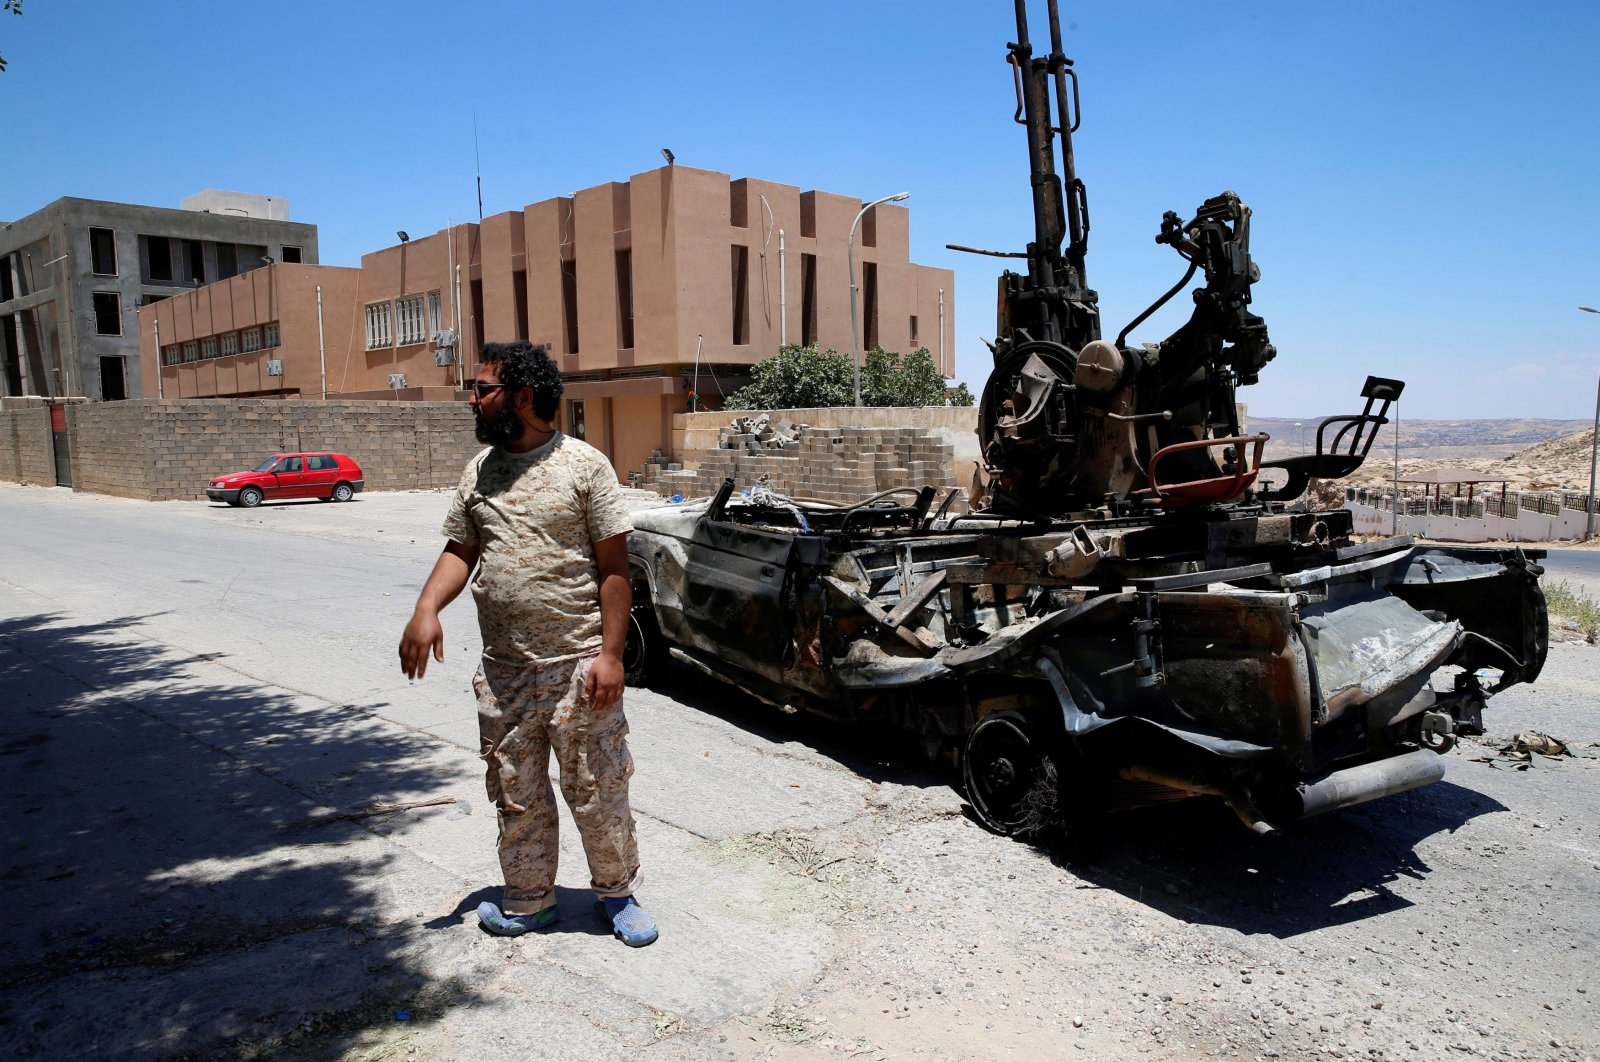 A member of forces allied to Libya's internationally recognized government stands near a destroyed military vehicle that belonged to putschist Gen. Khalifa Haftar, in Gharyan, south of Tripoli, Libya, June 27, 2019. (Reuters Photo)